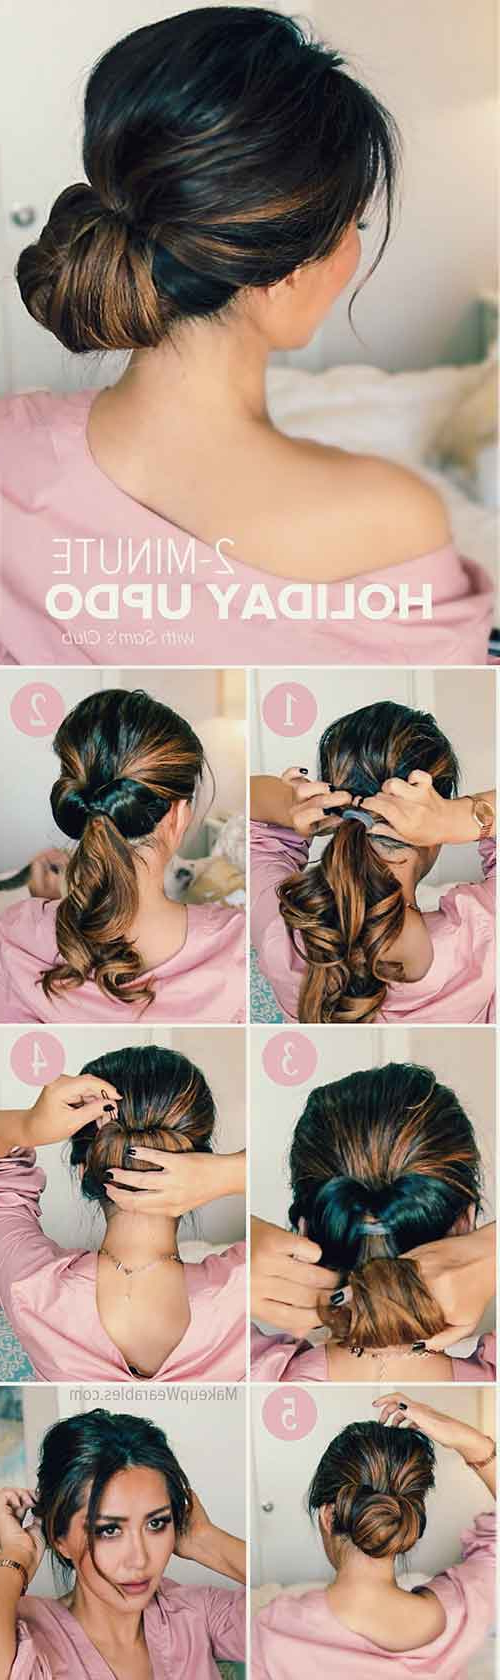 20 Stunningly Easy Diy Messy Buns Intended For Newest Double Twist Bun Updo Hairstyles (View 14 of 20)